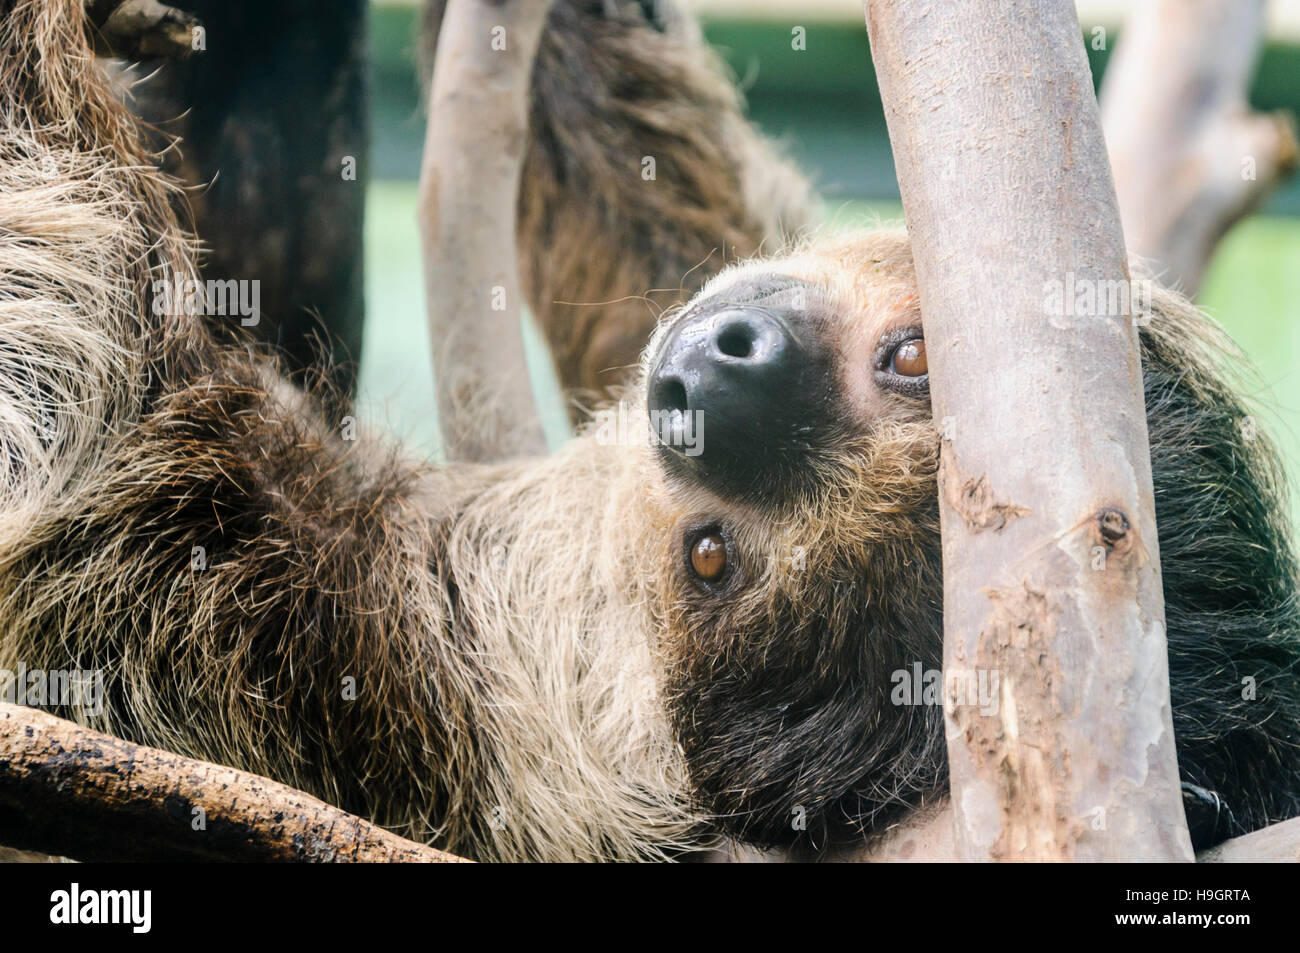 Three toed sloth hanging upside down from some branches. - Stock Image